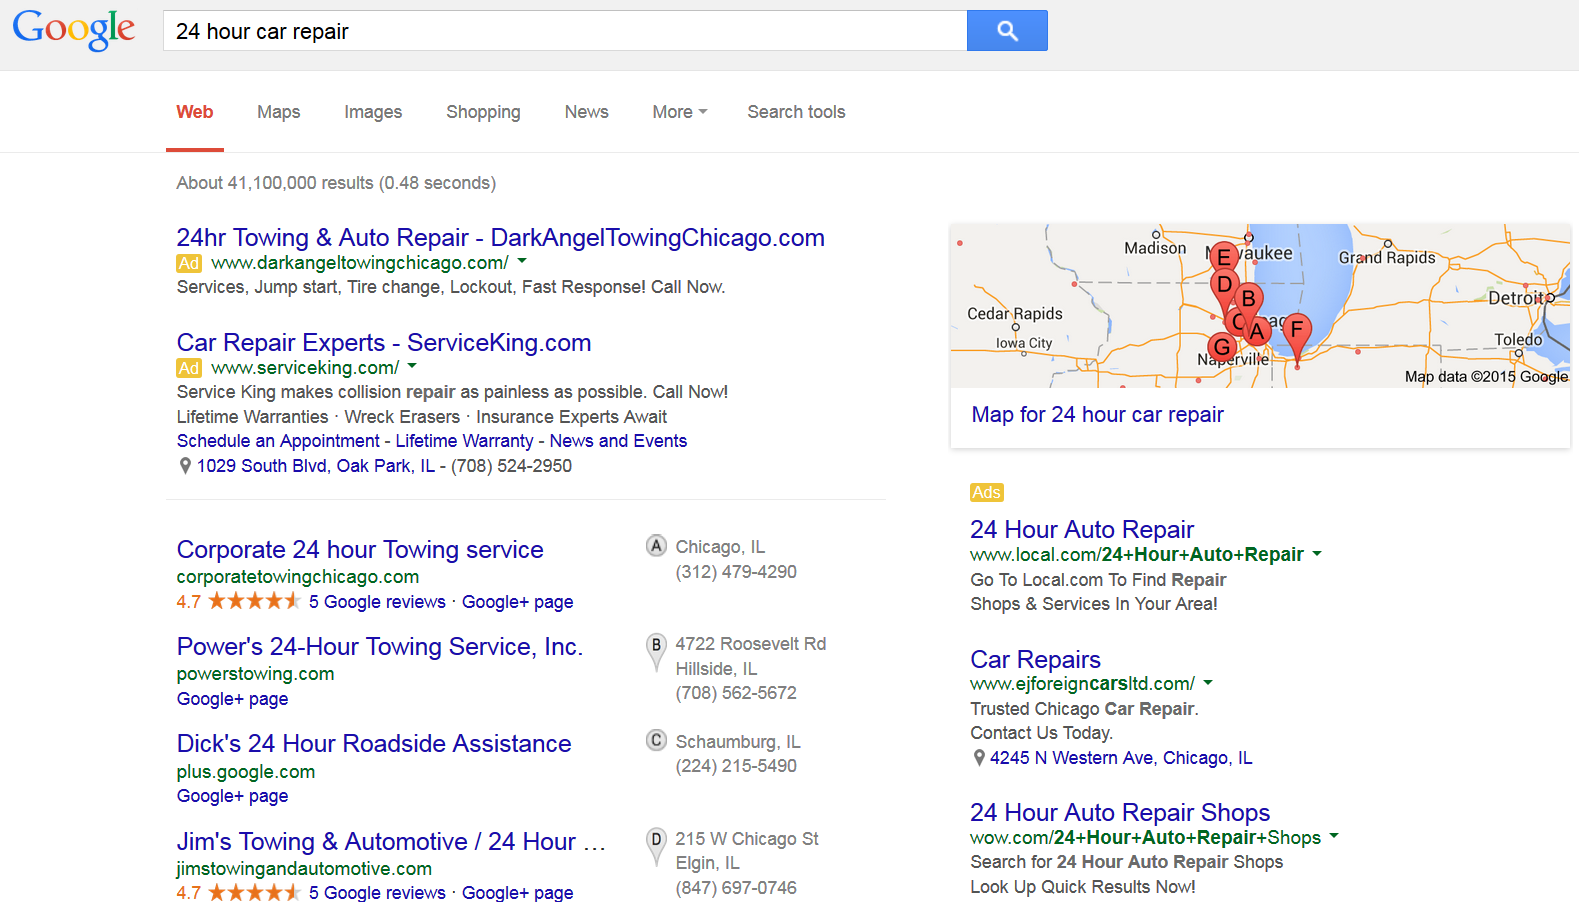 Ad relevance and quality score in AdWords